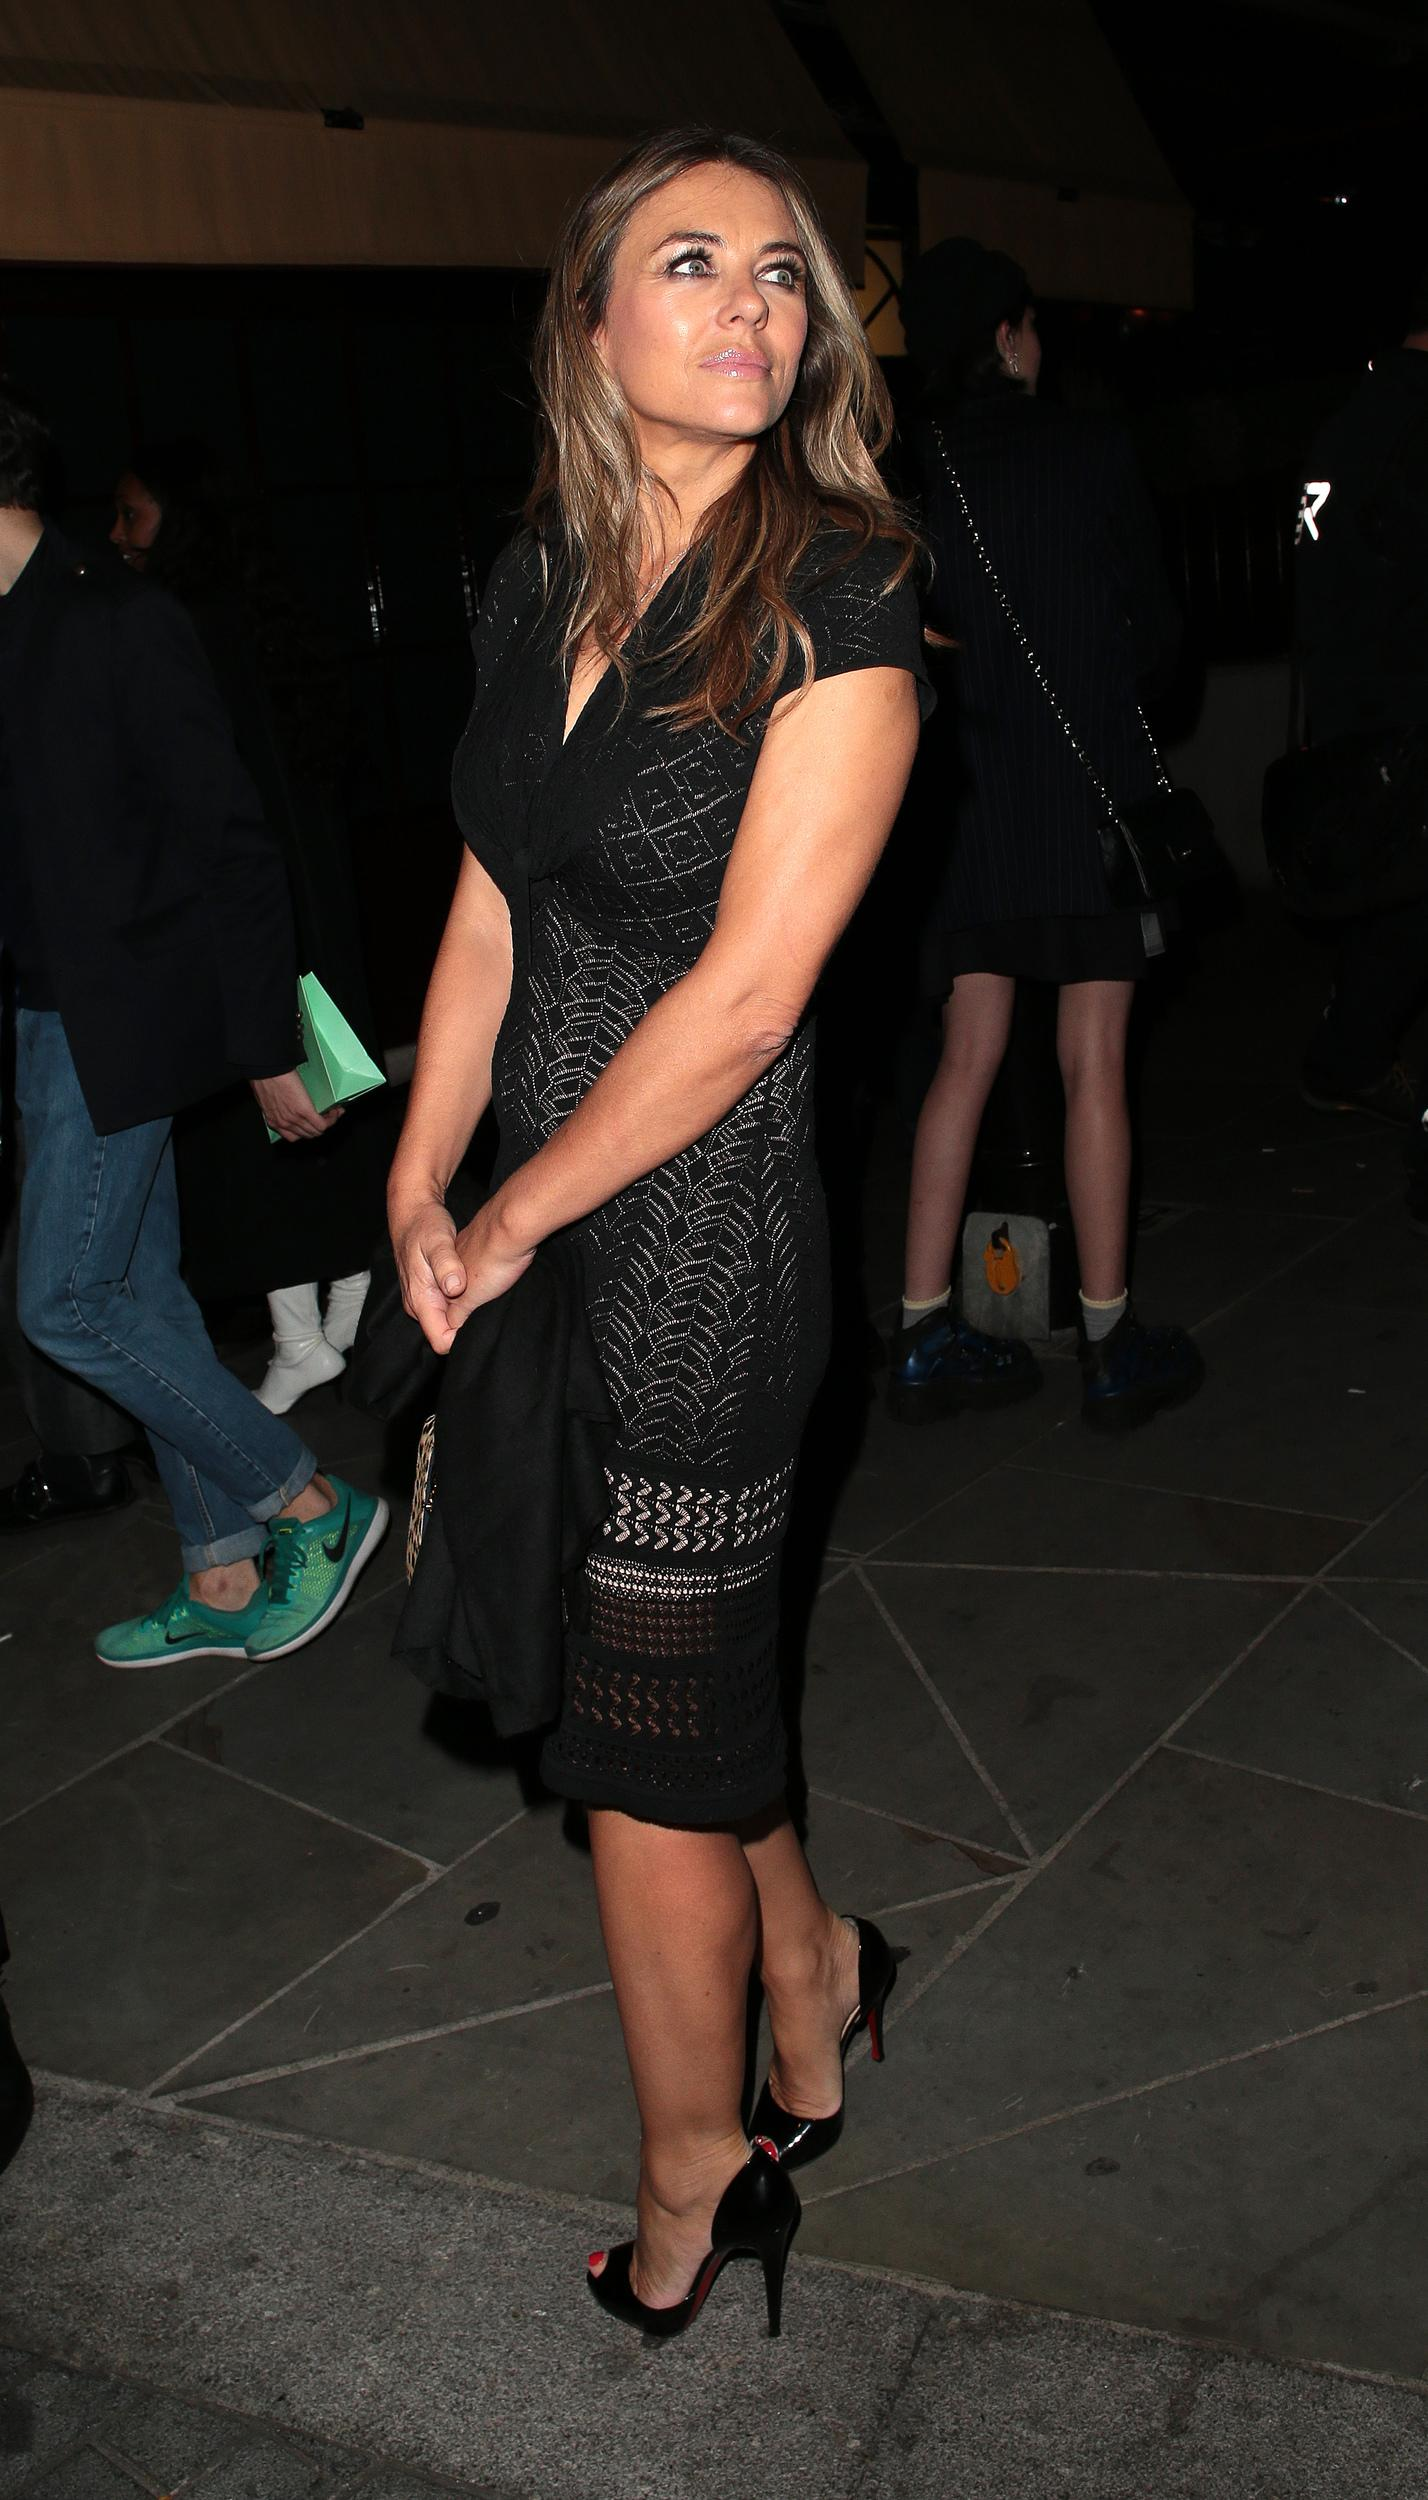 LONDON, ENGLAND - SEPTEMBER 17: Elizabeth Hurley seen attending LOVE Magazine party at No 5 Hertford Street (Loulou's) during London Fashion Week September 2018 on September 17, 2018 in London, England. (Photo by Ricky Vigil/GC Images)